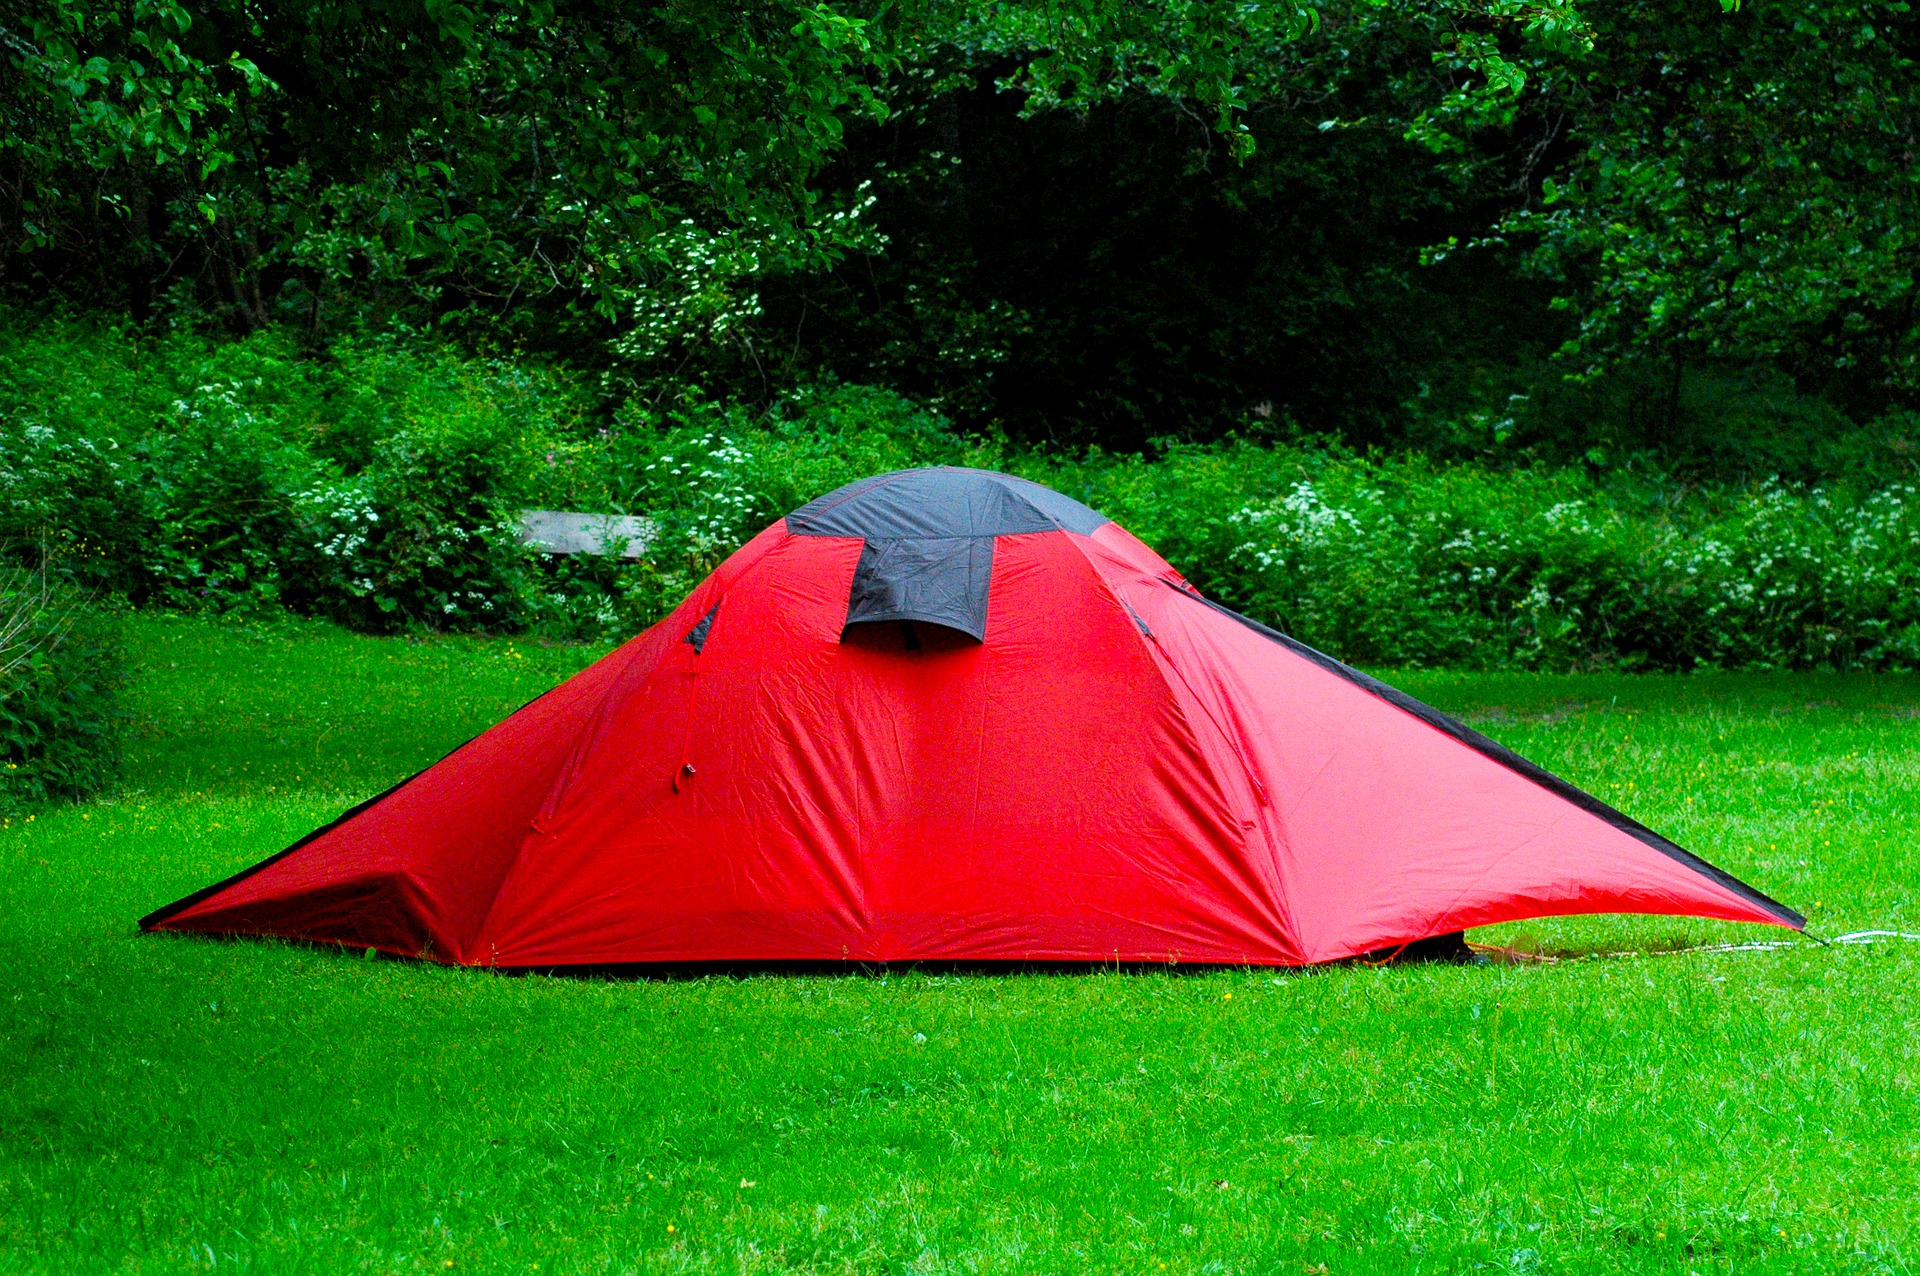 What are tents made from